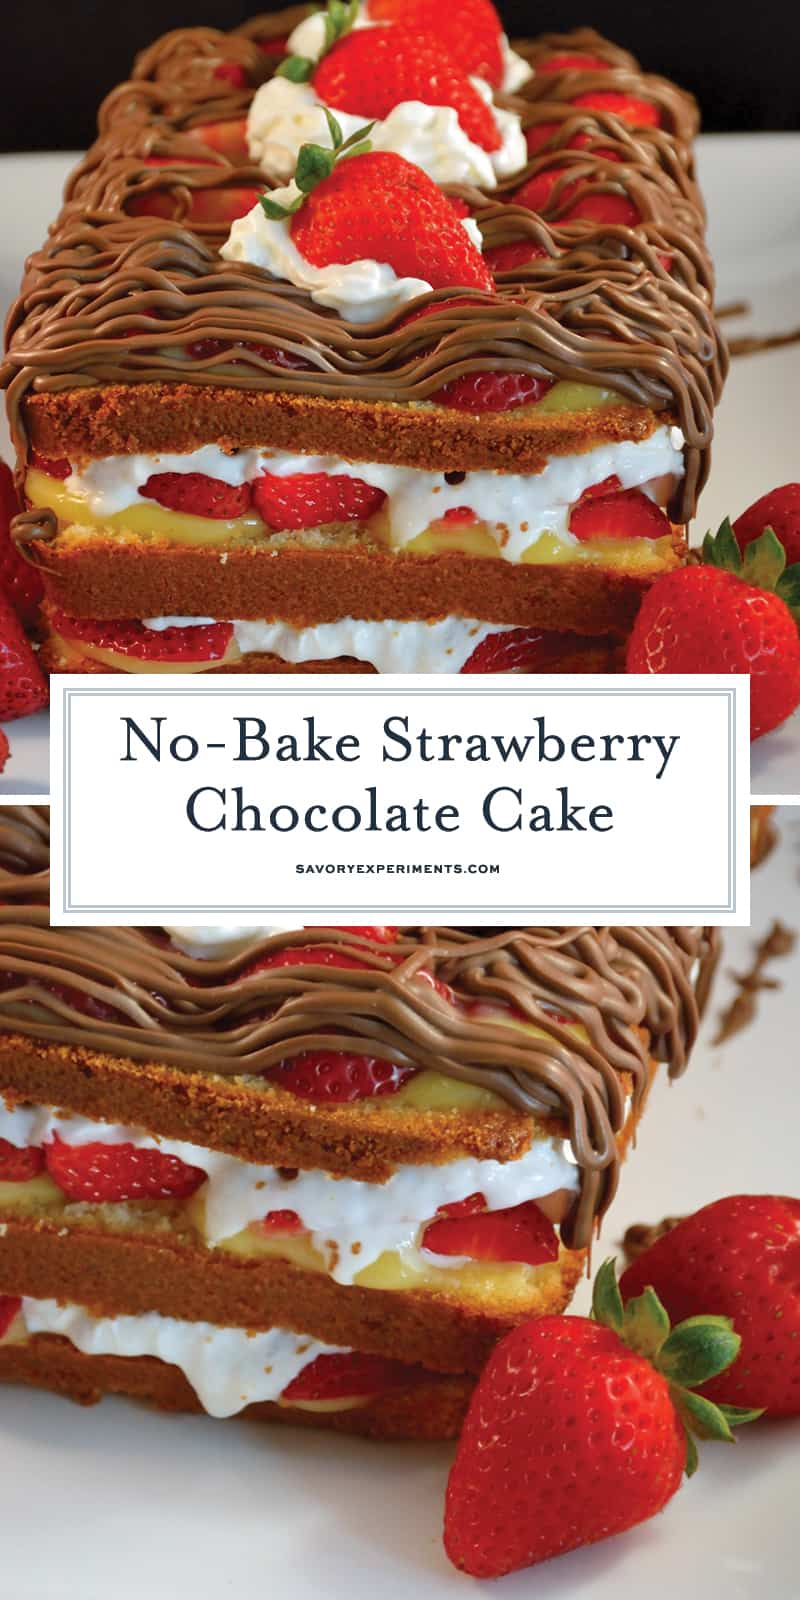 No-Bake Strawberry Chocolate Cake | Easy No Bake Dessert ...